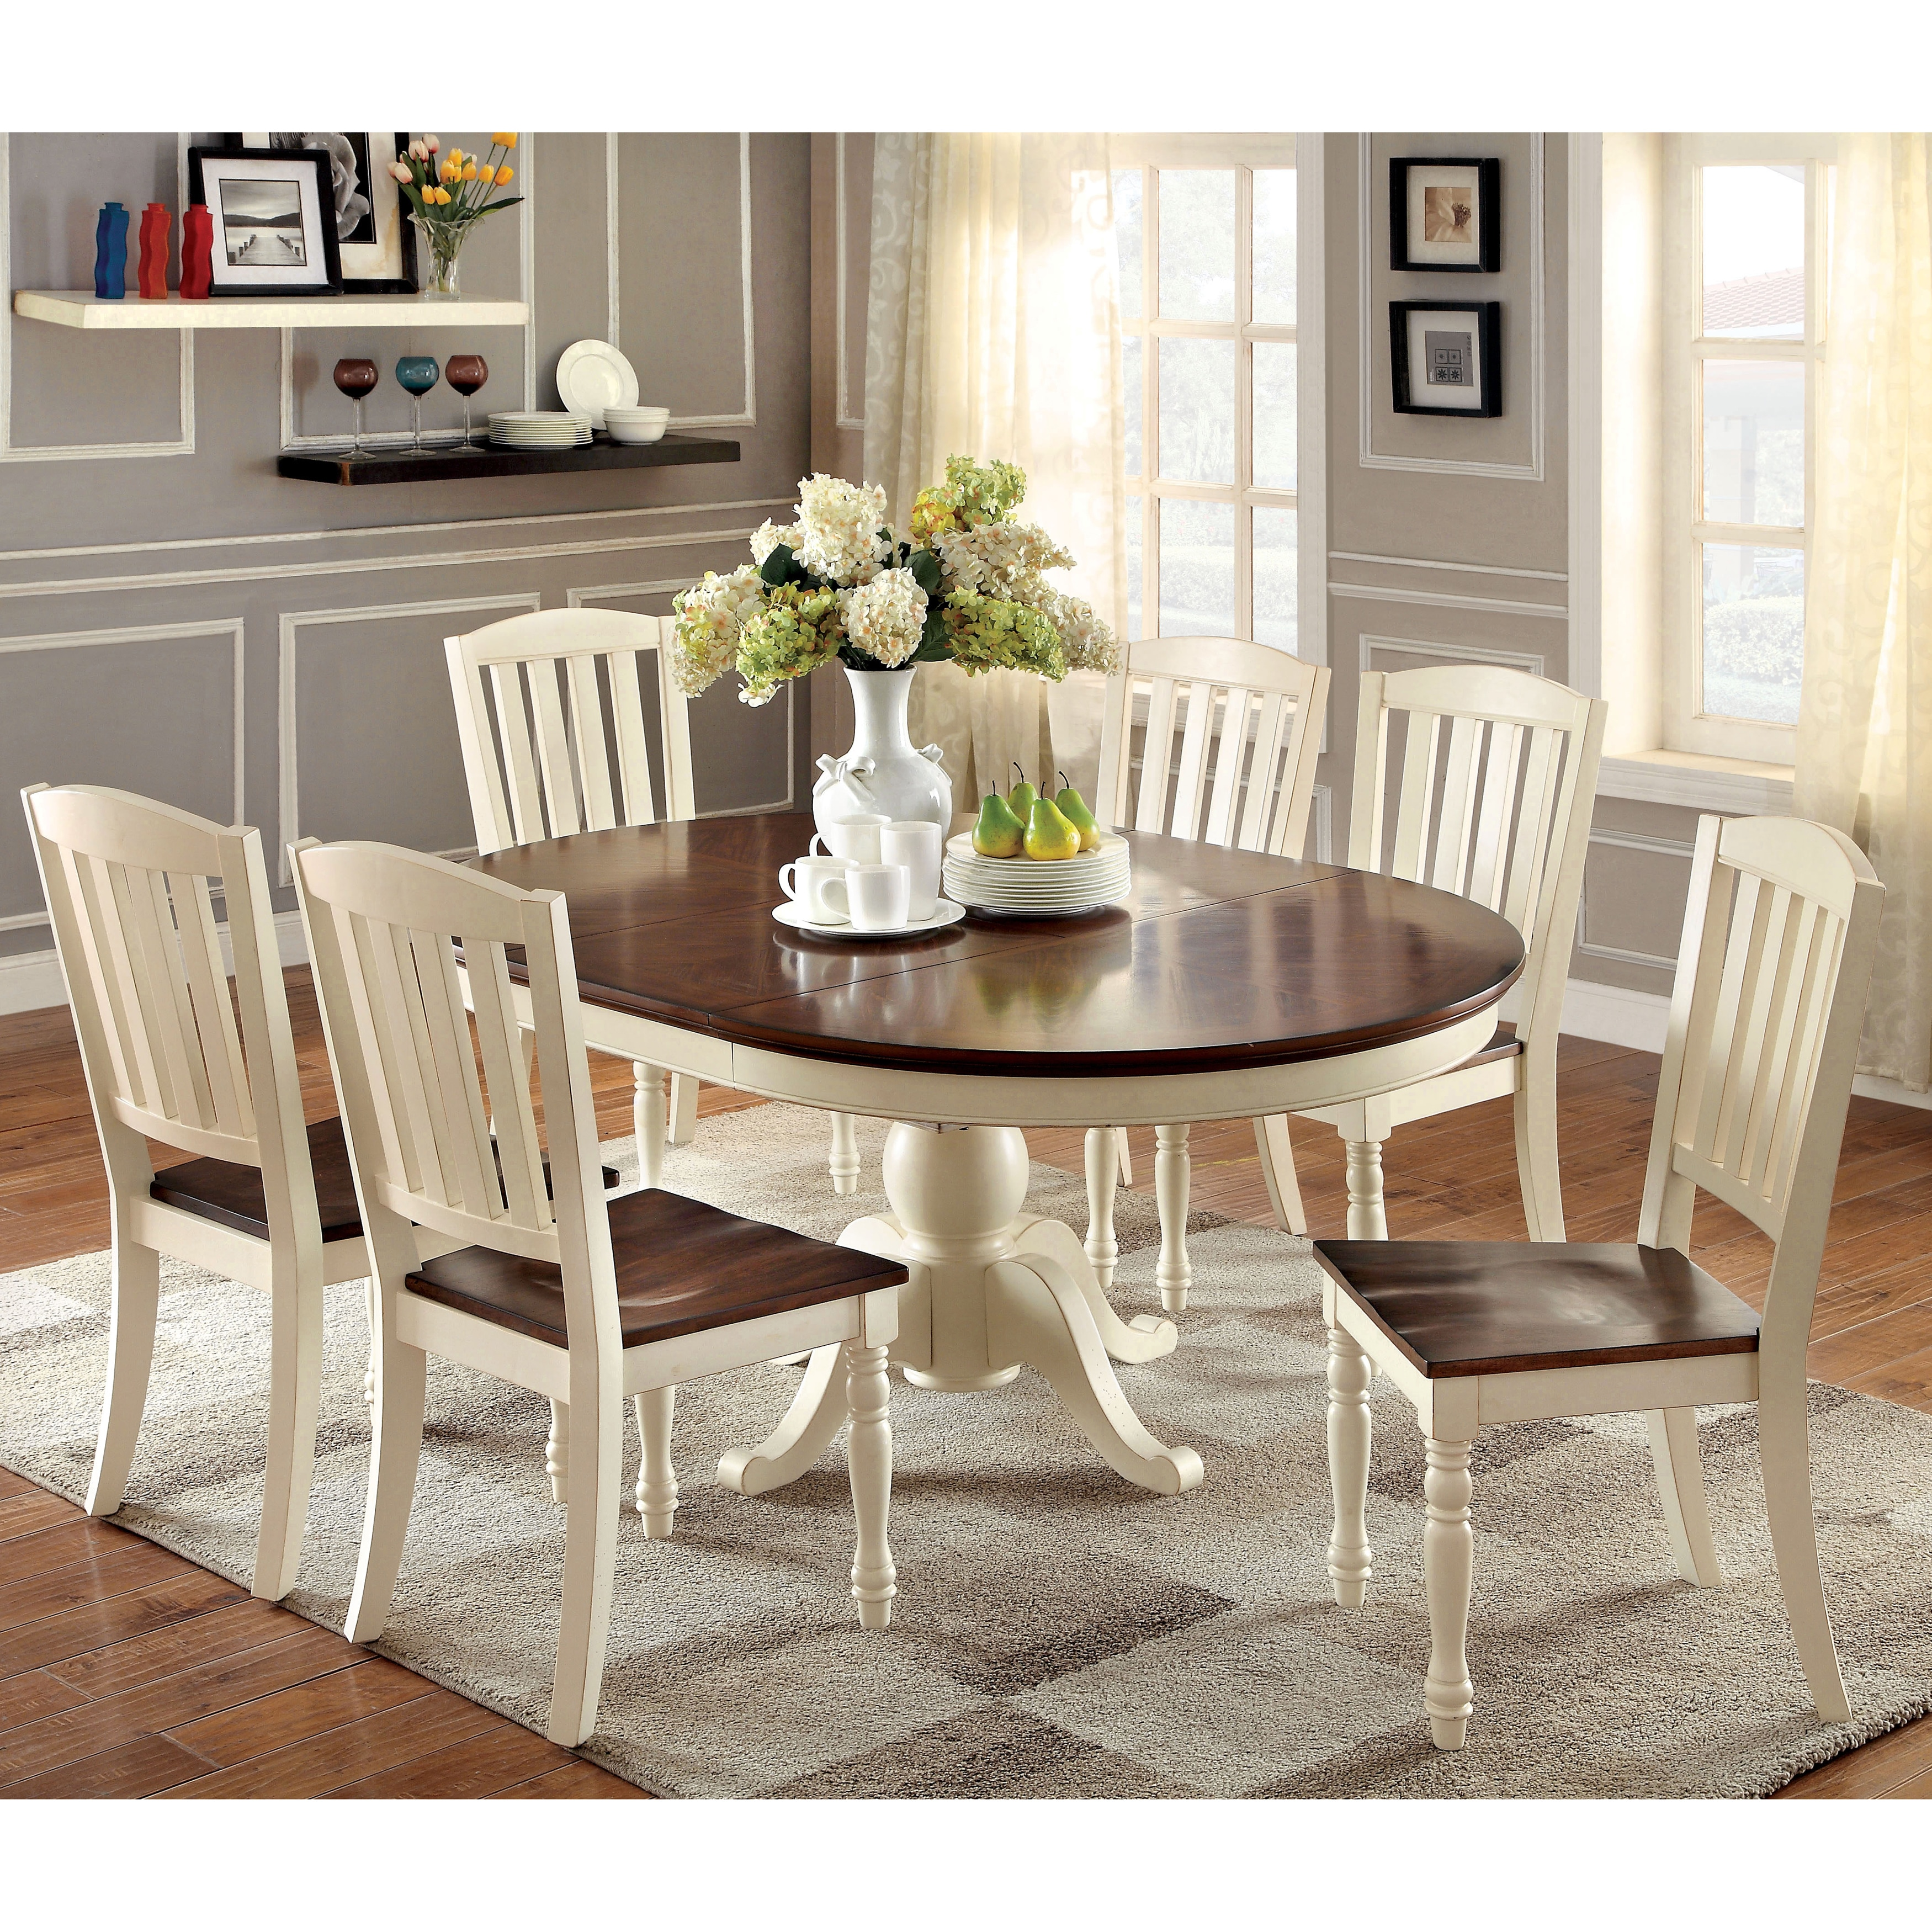 Charmant The Gray Barn Pitchfork 7 Piece Cottage Style Oval Dining Set